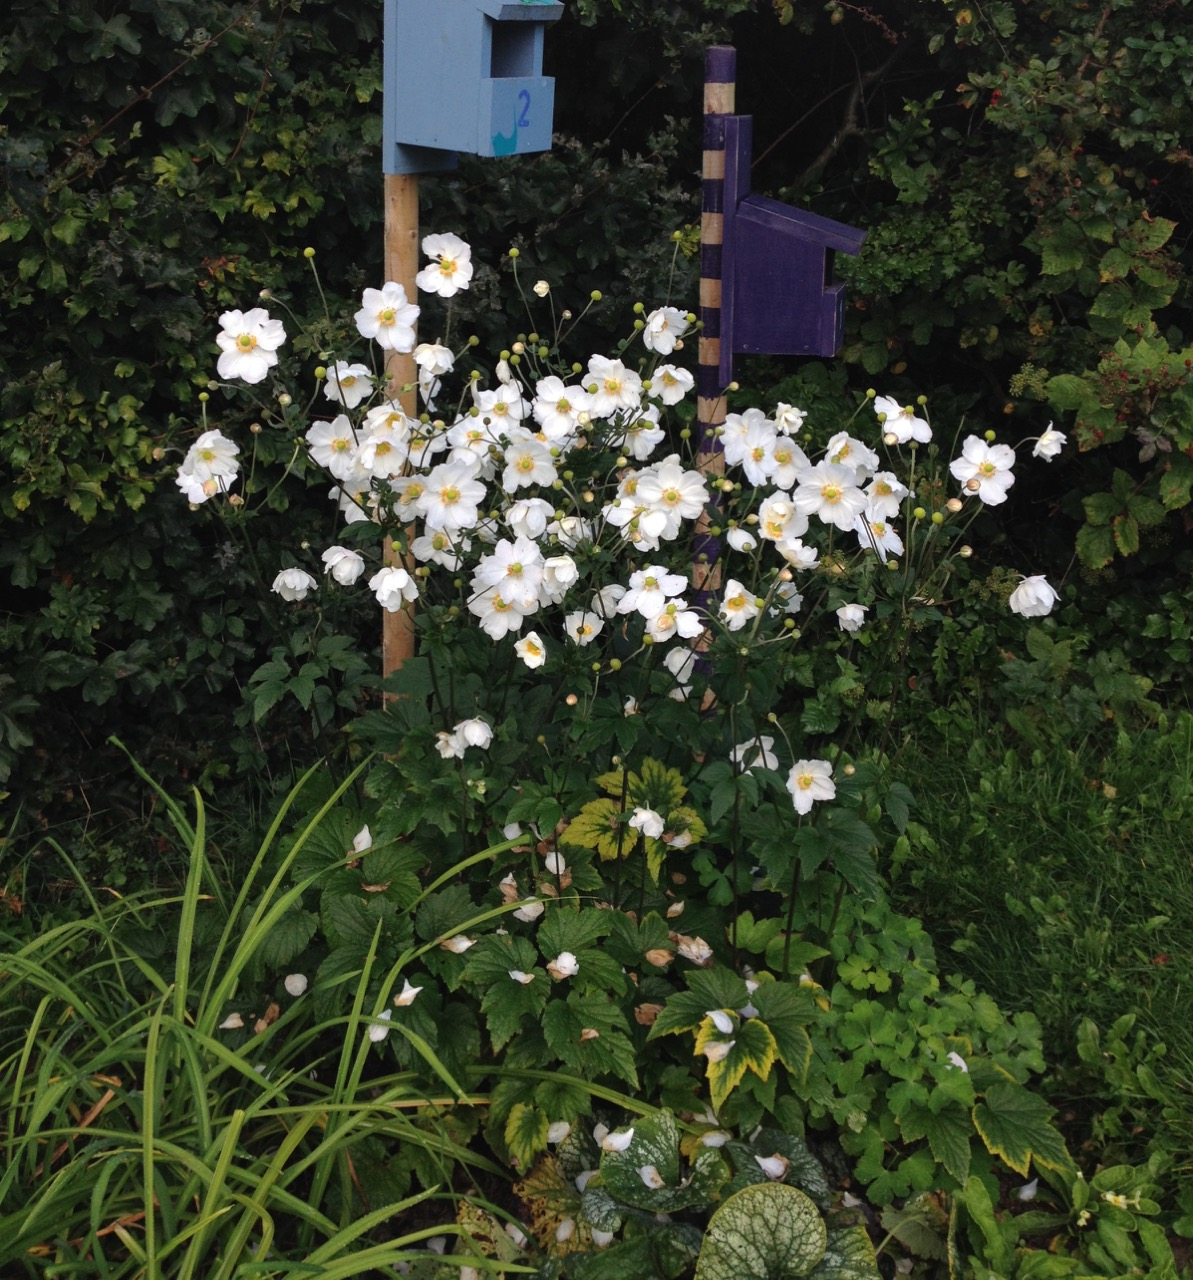 And as new flowers come out, we captured a few plant combinations we like. Here we have Japanese anemones, with daylily leaves (both divided last year from a local garden) and brunnera (from a charity plant sale). The white flowers look good against the dark hedge behind.